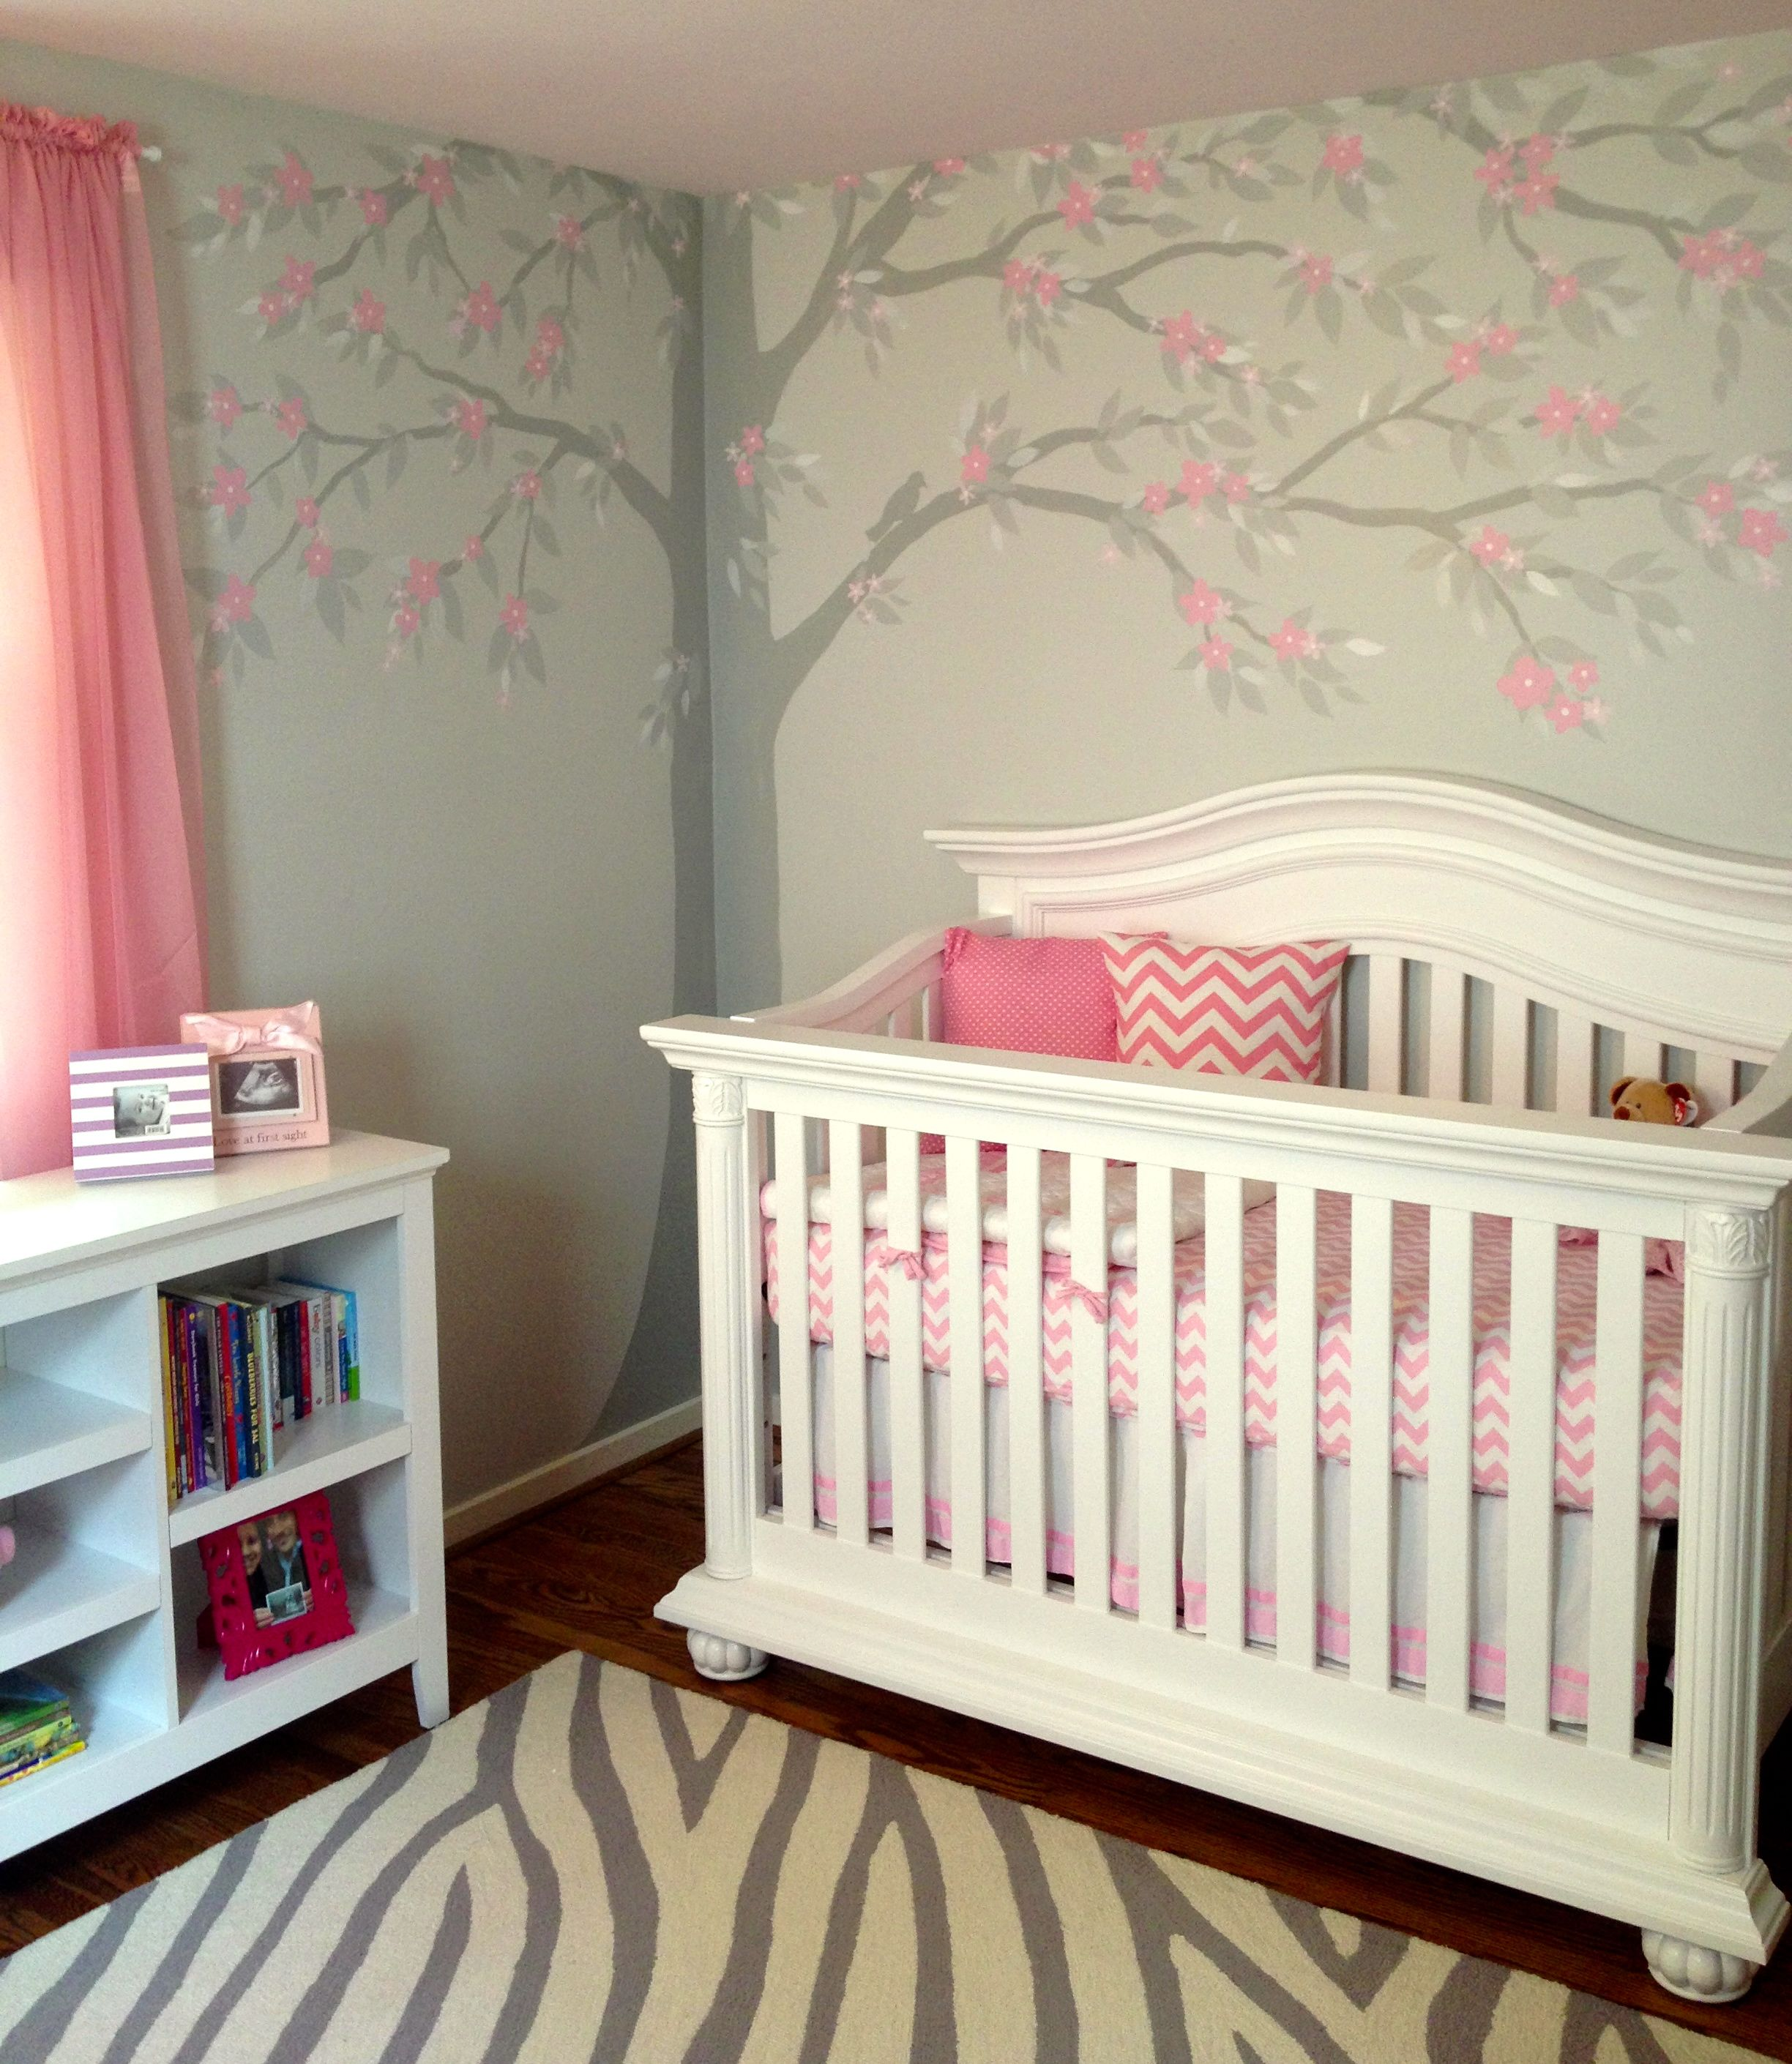 Soft Pink And Gray Painted Walls, Ceiling, And Floral Tree Mural In Baby Gu0027s